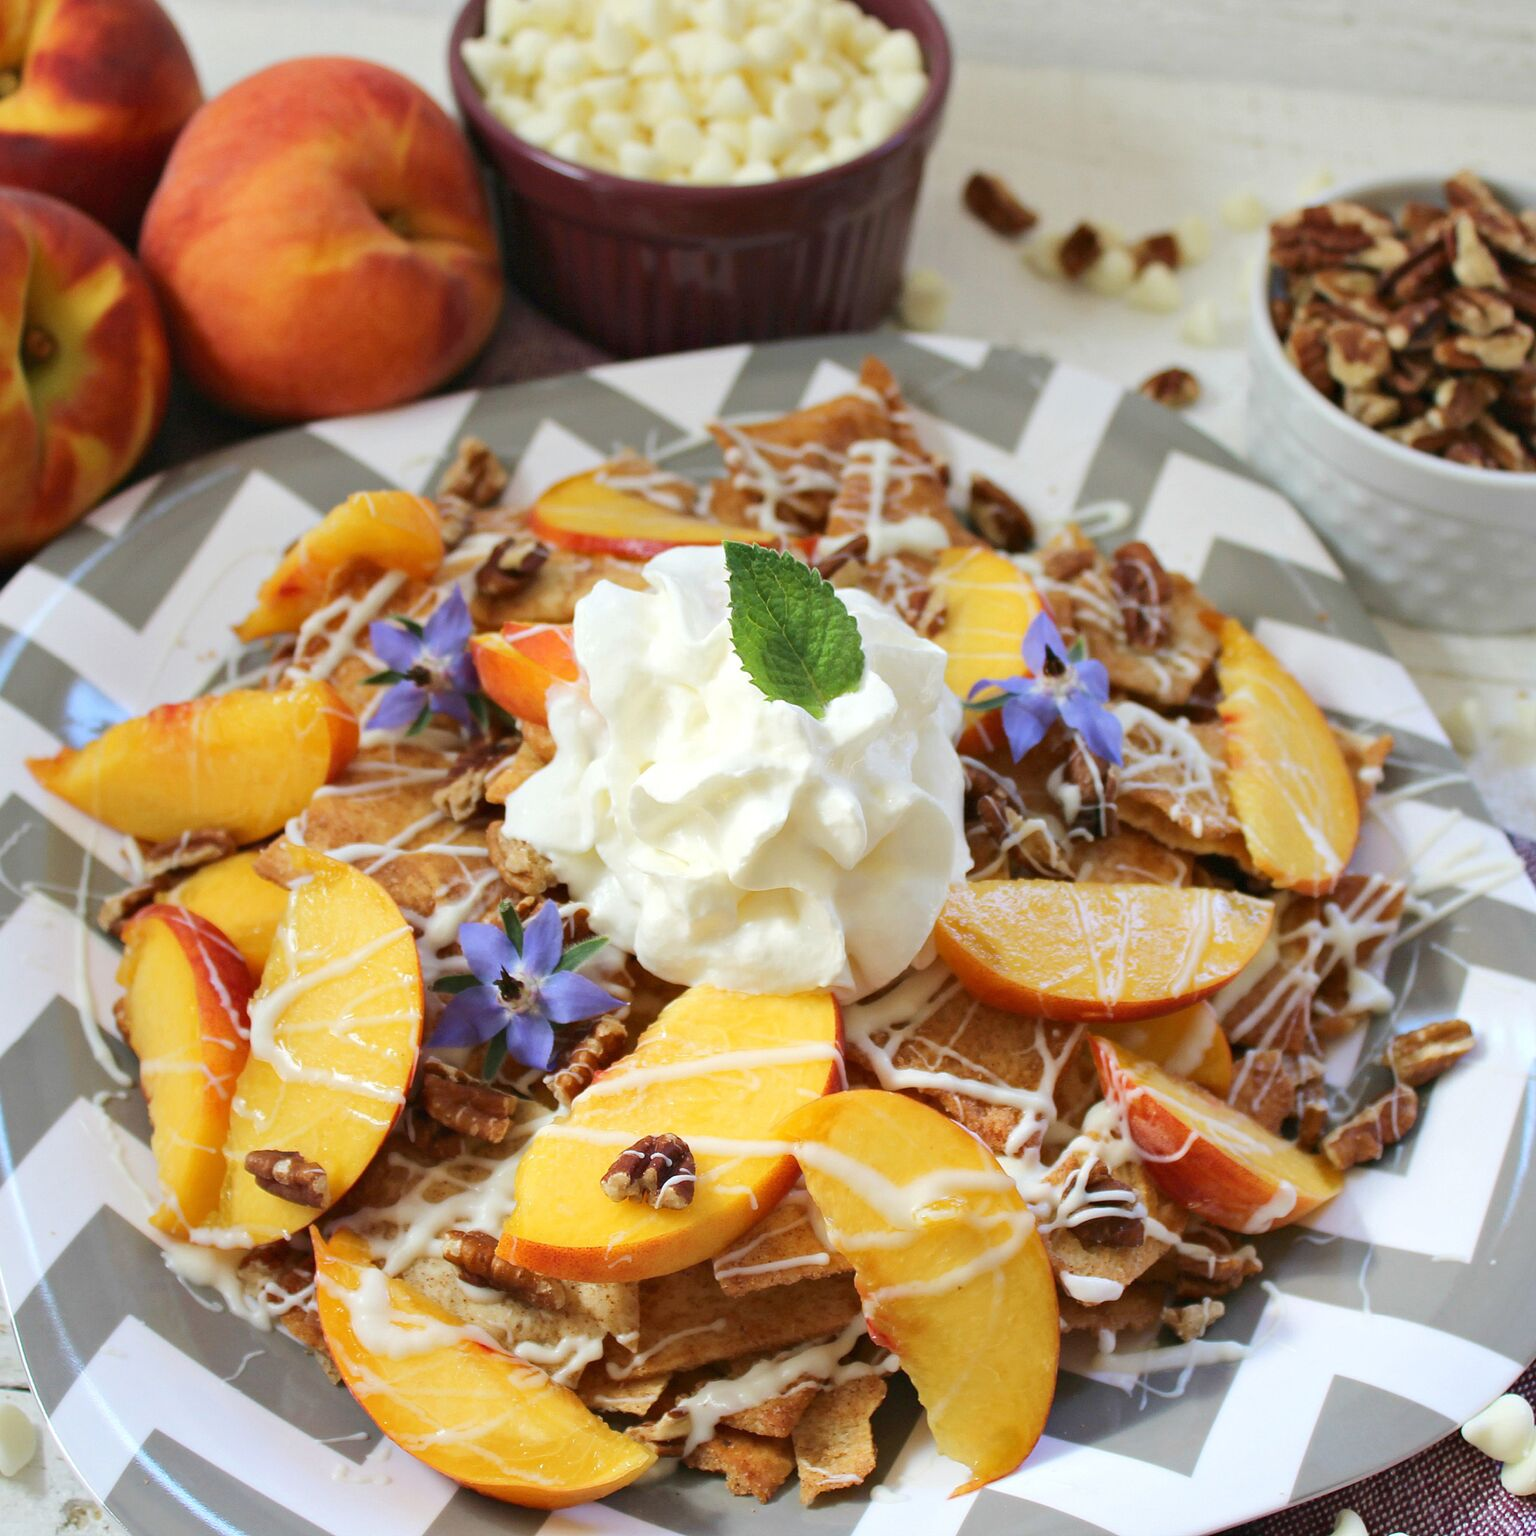 Want an easy dessert for your family? Each ingredient in these Fruity Dessert Nachos can easily be bought at the store and quickly turned into a fabulous dessert. No mixing, no baking, and not a lot of cleanup.